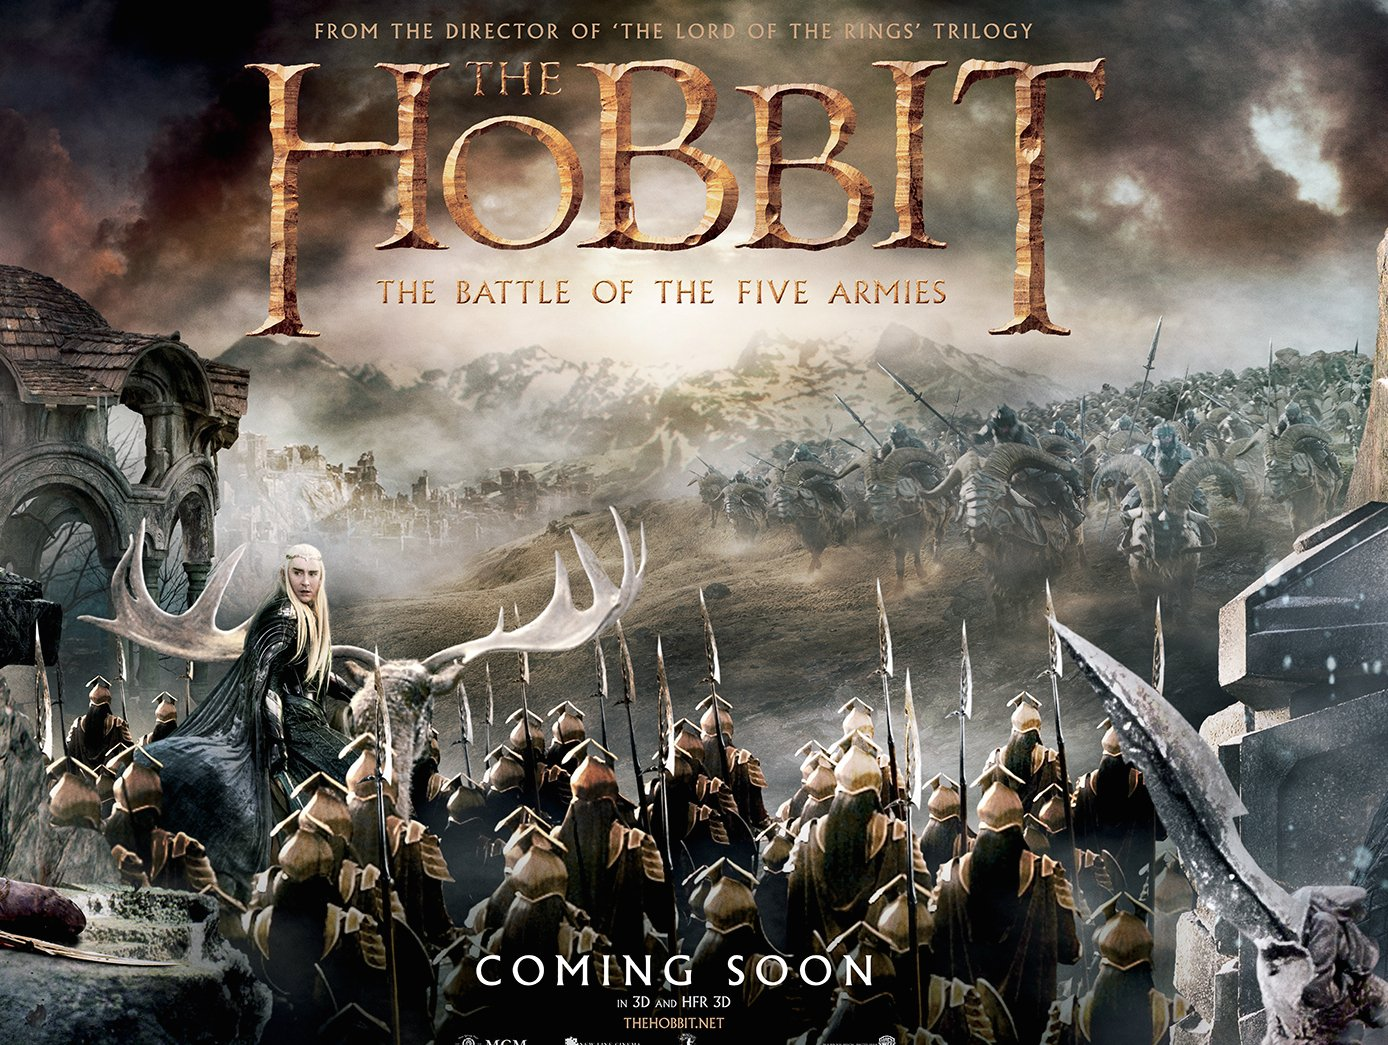 Everything That Happens In The Tolkien Universe After The Hobbit: The Battle of the Five Armies